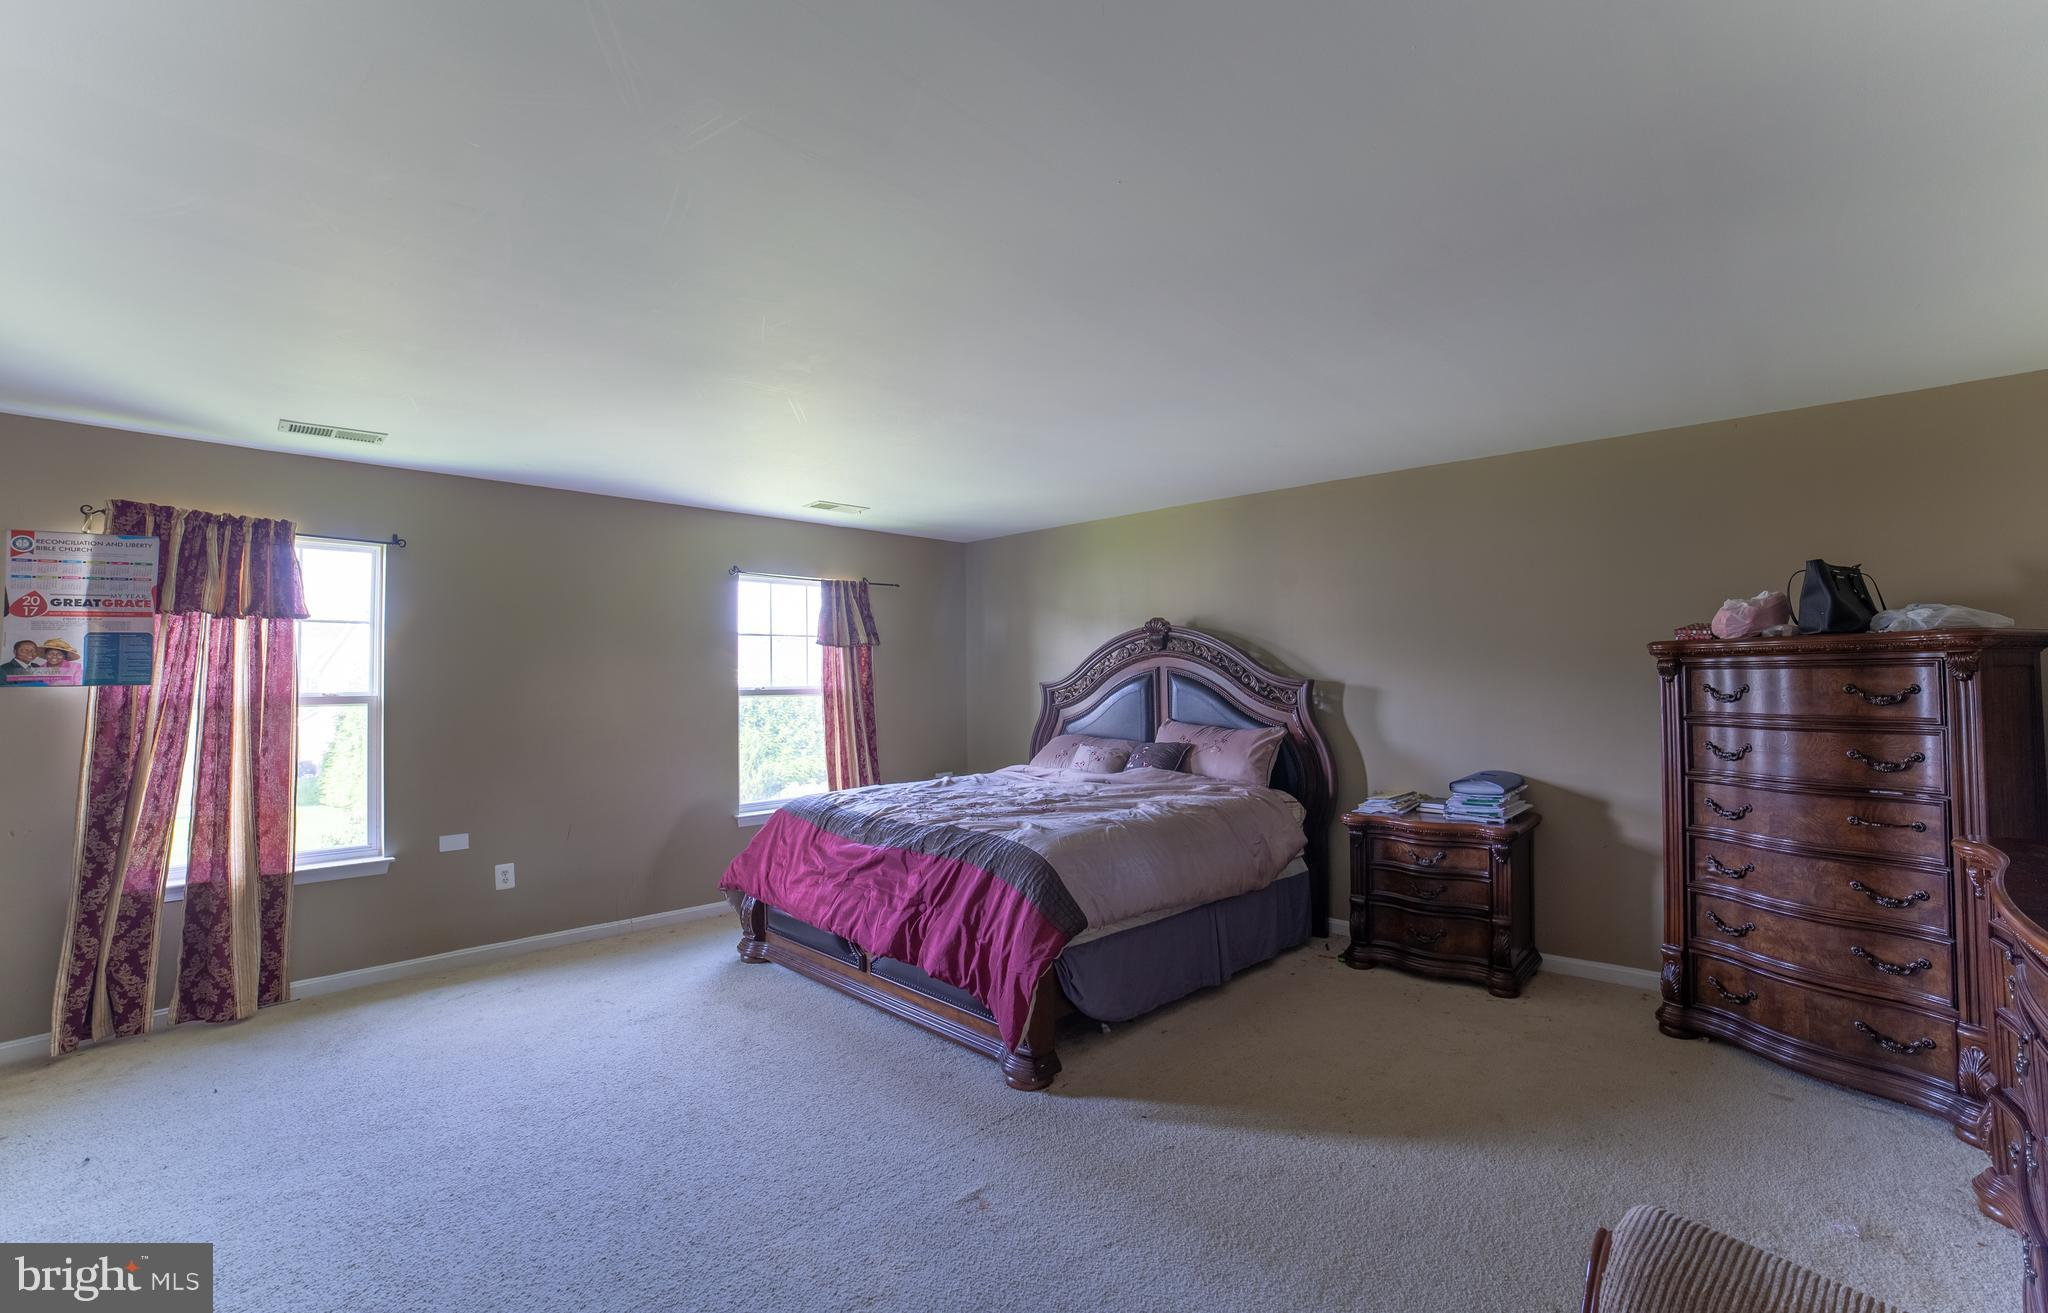 7537 ROXY DRIVE Baltimore SOLD LISTING MLS